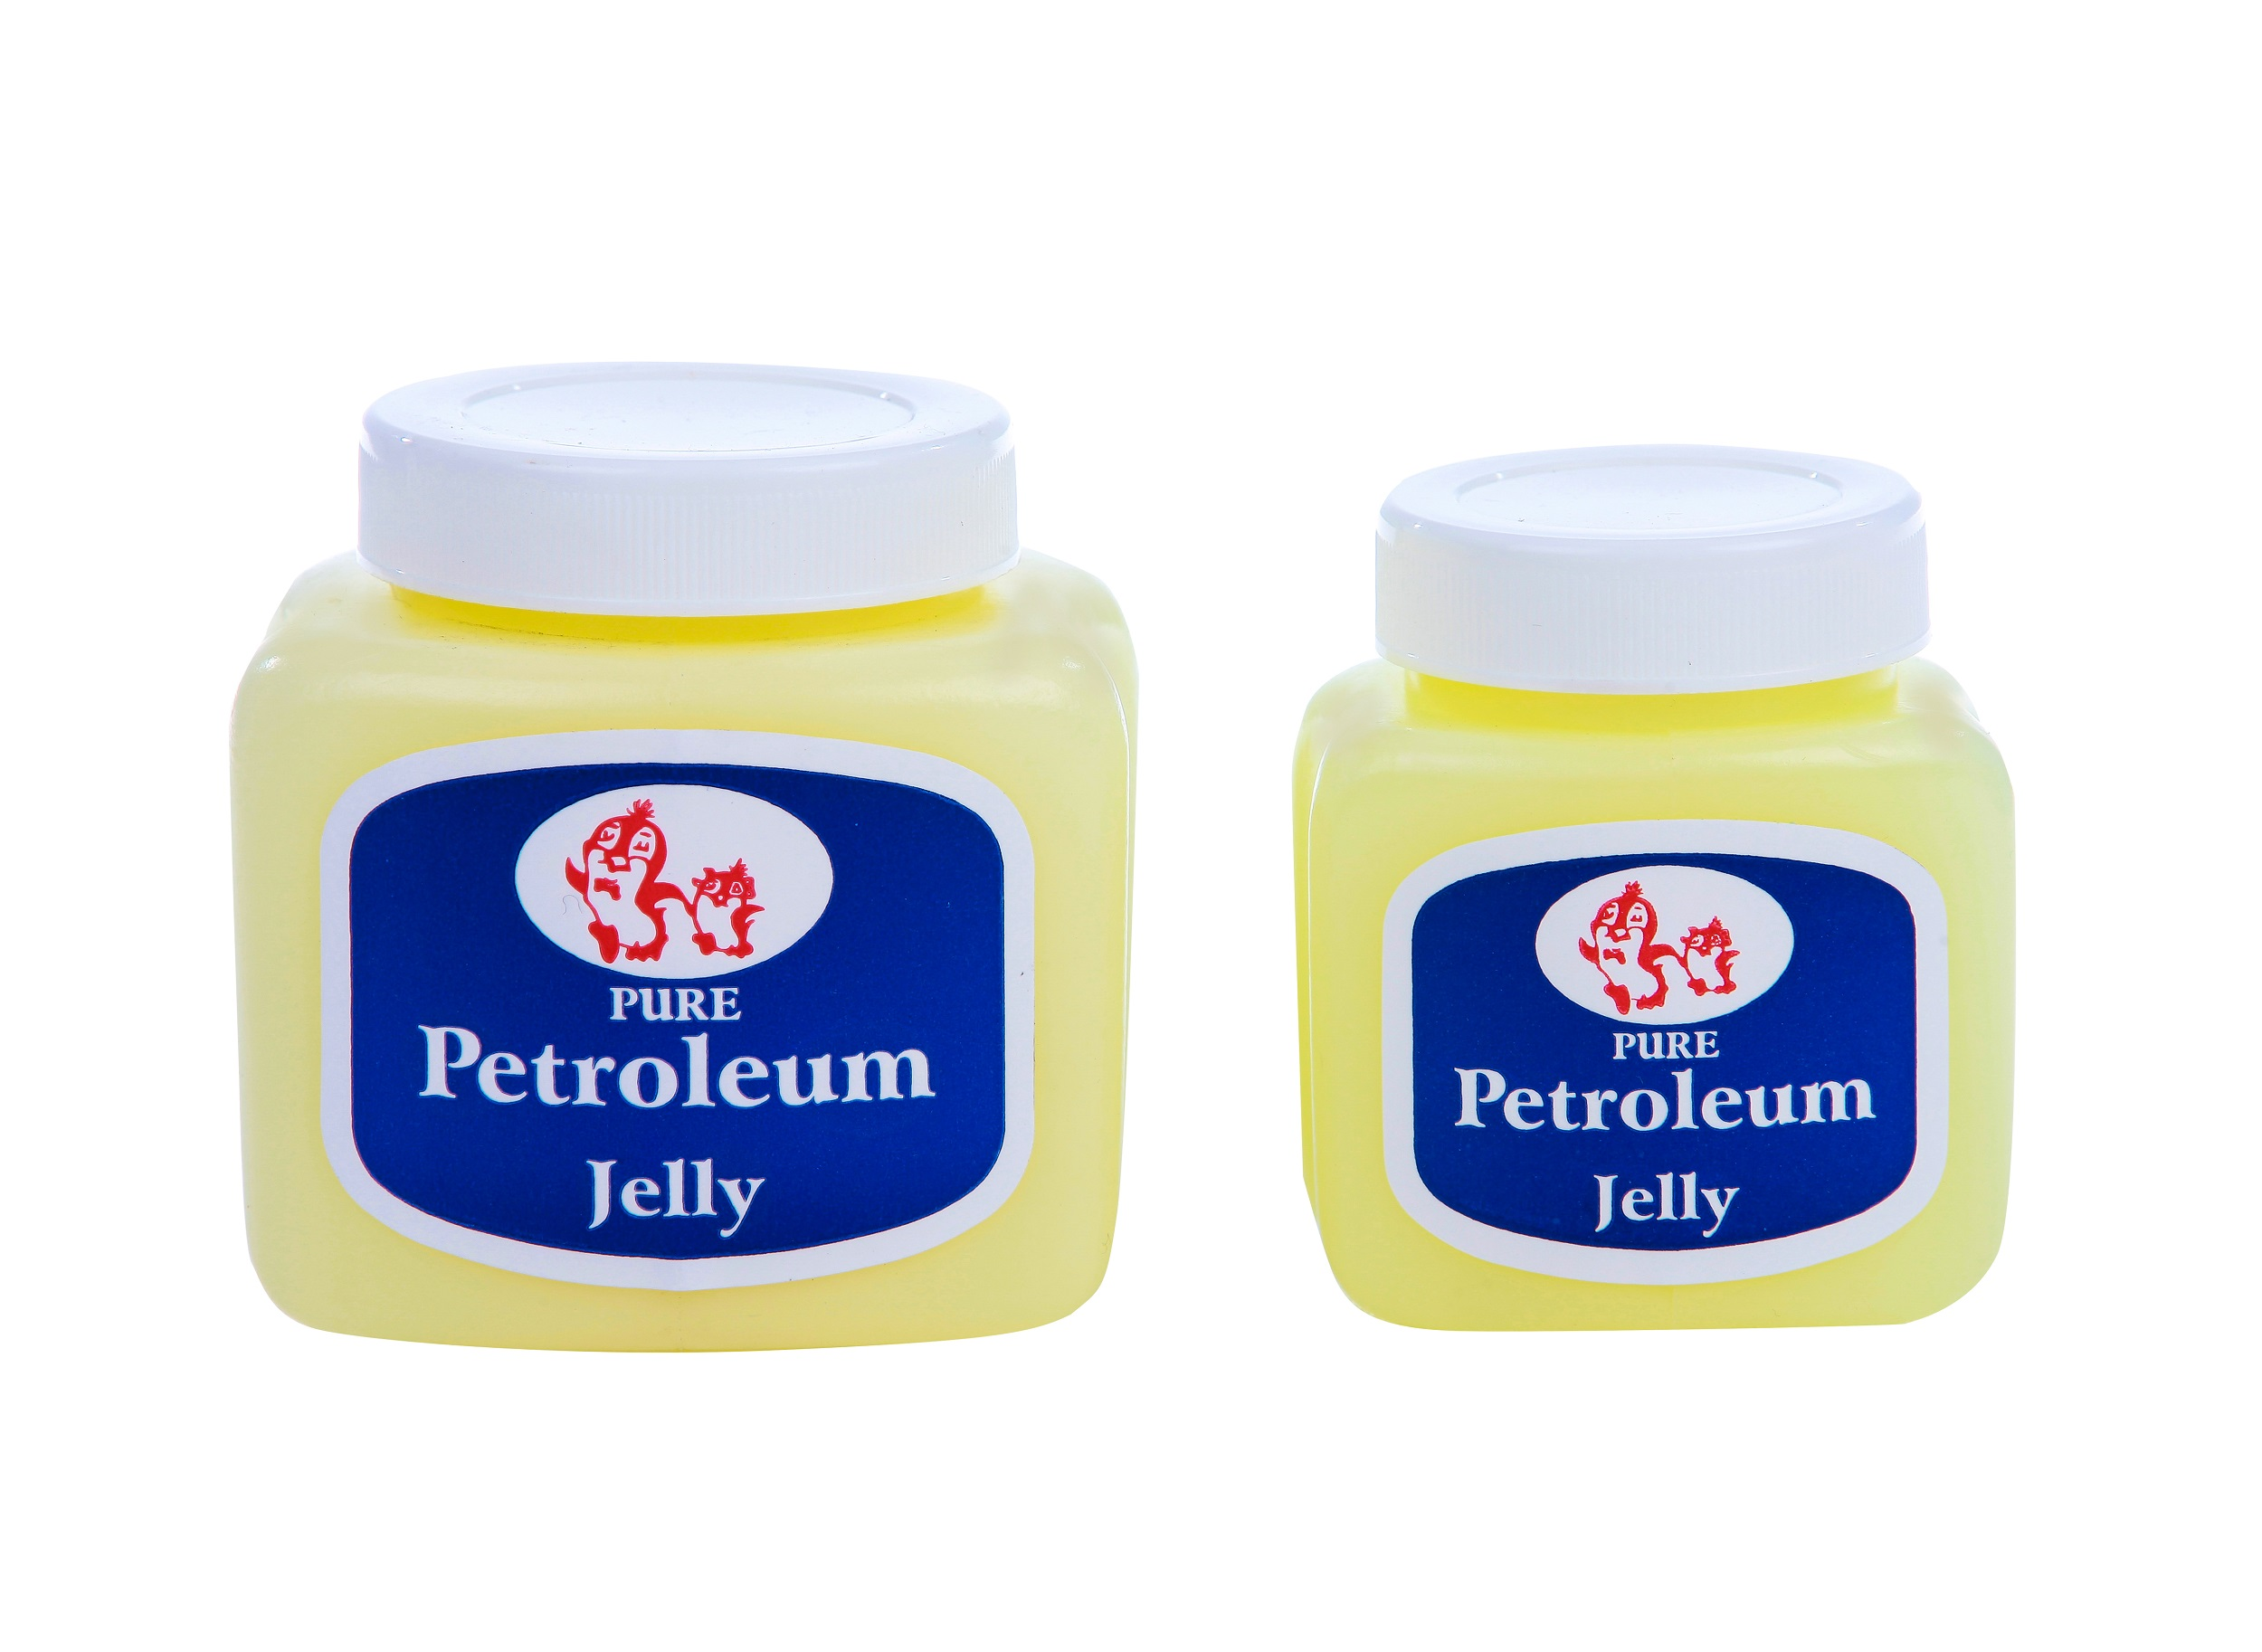 帝通凡士林(原味)Petroleum Jelly